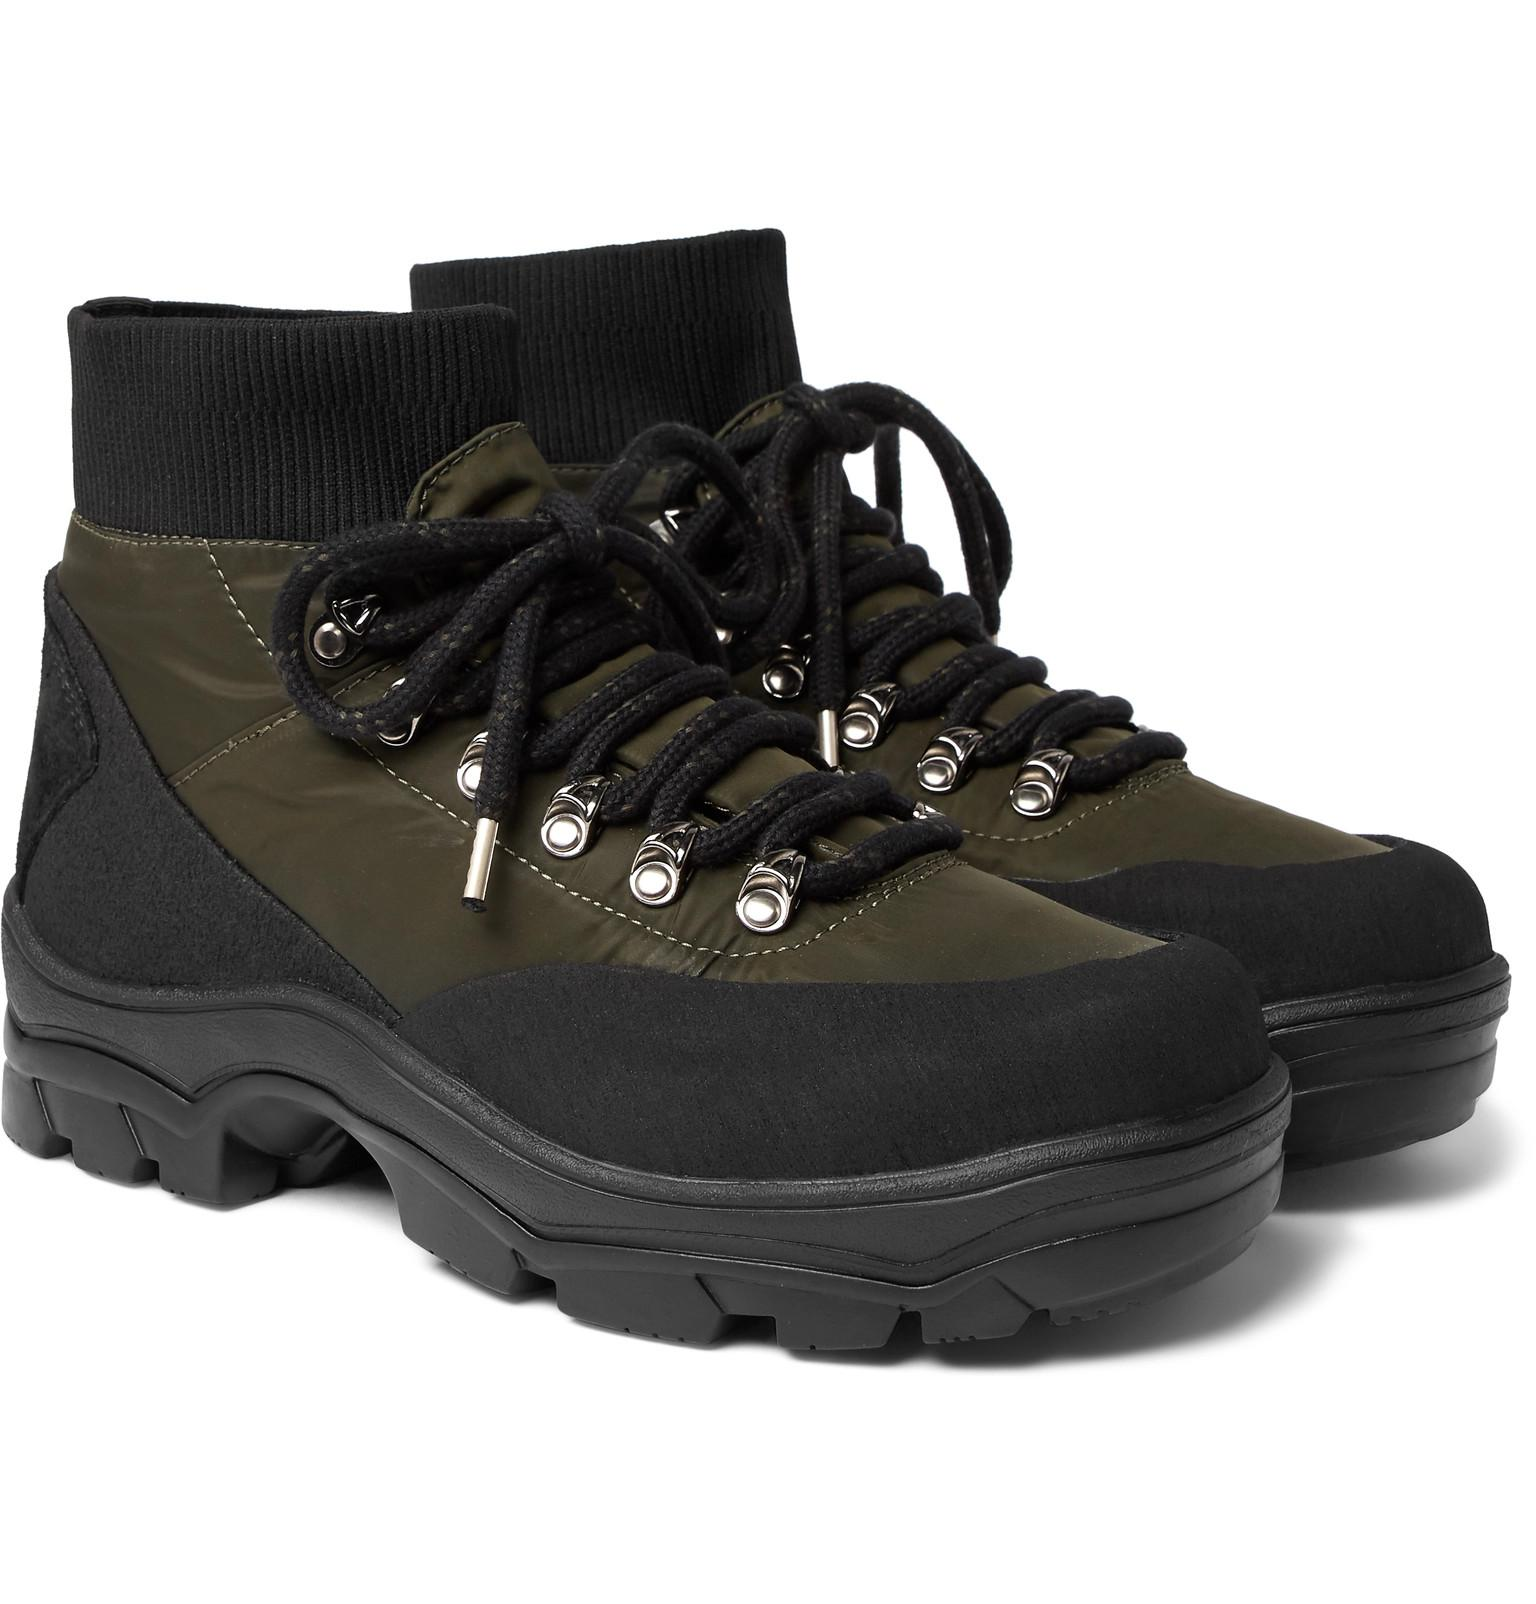 b95453d3a7f0 Lyst - Moncler Clement Suede-trimmed Shell Hiking Boots in Black for Men